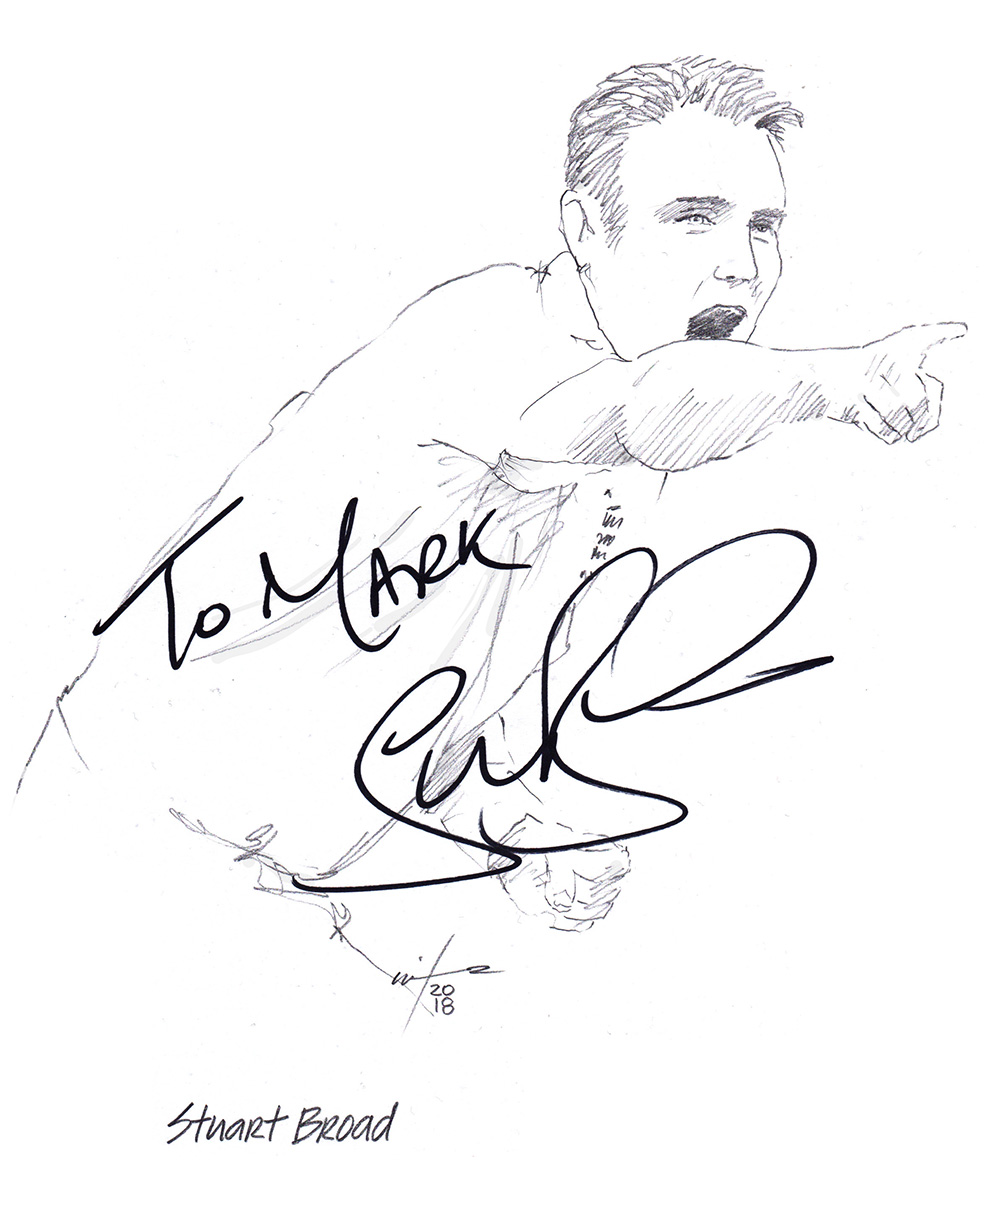 Autographed drawing of cricketer Stuart Broad